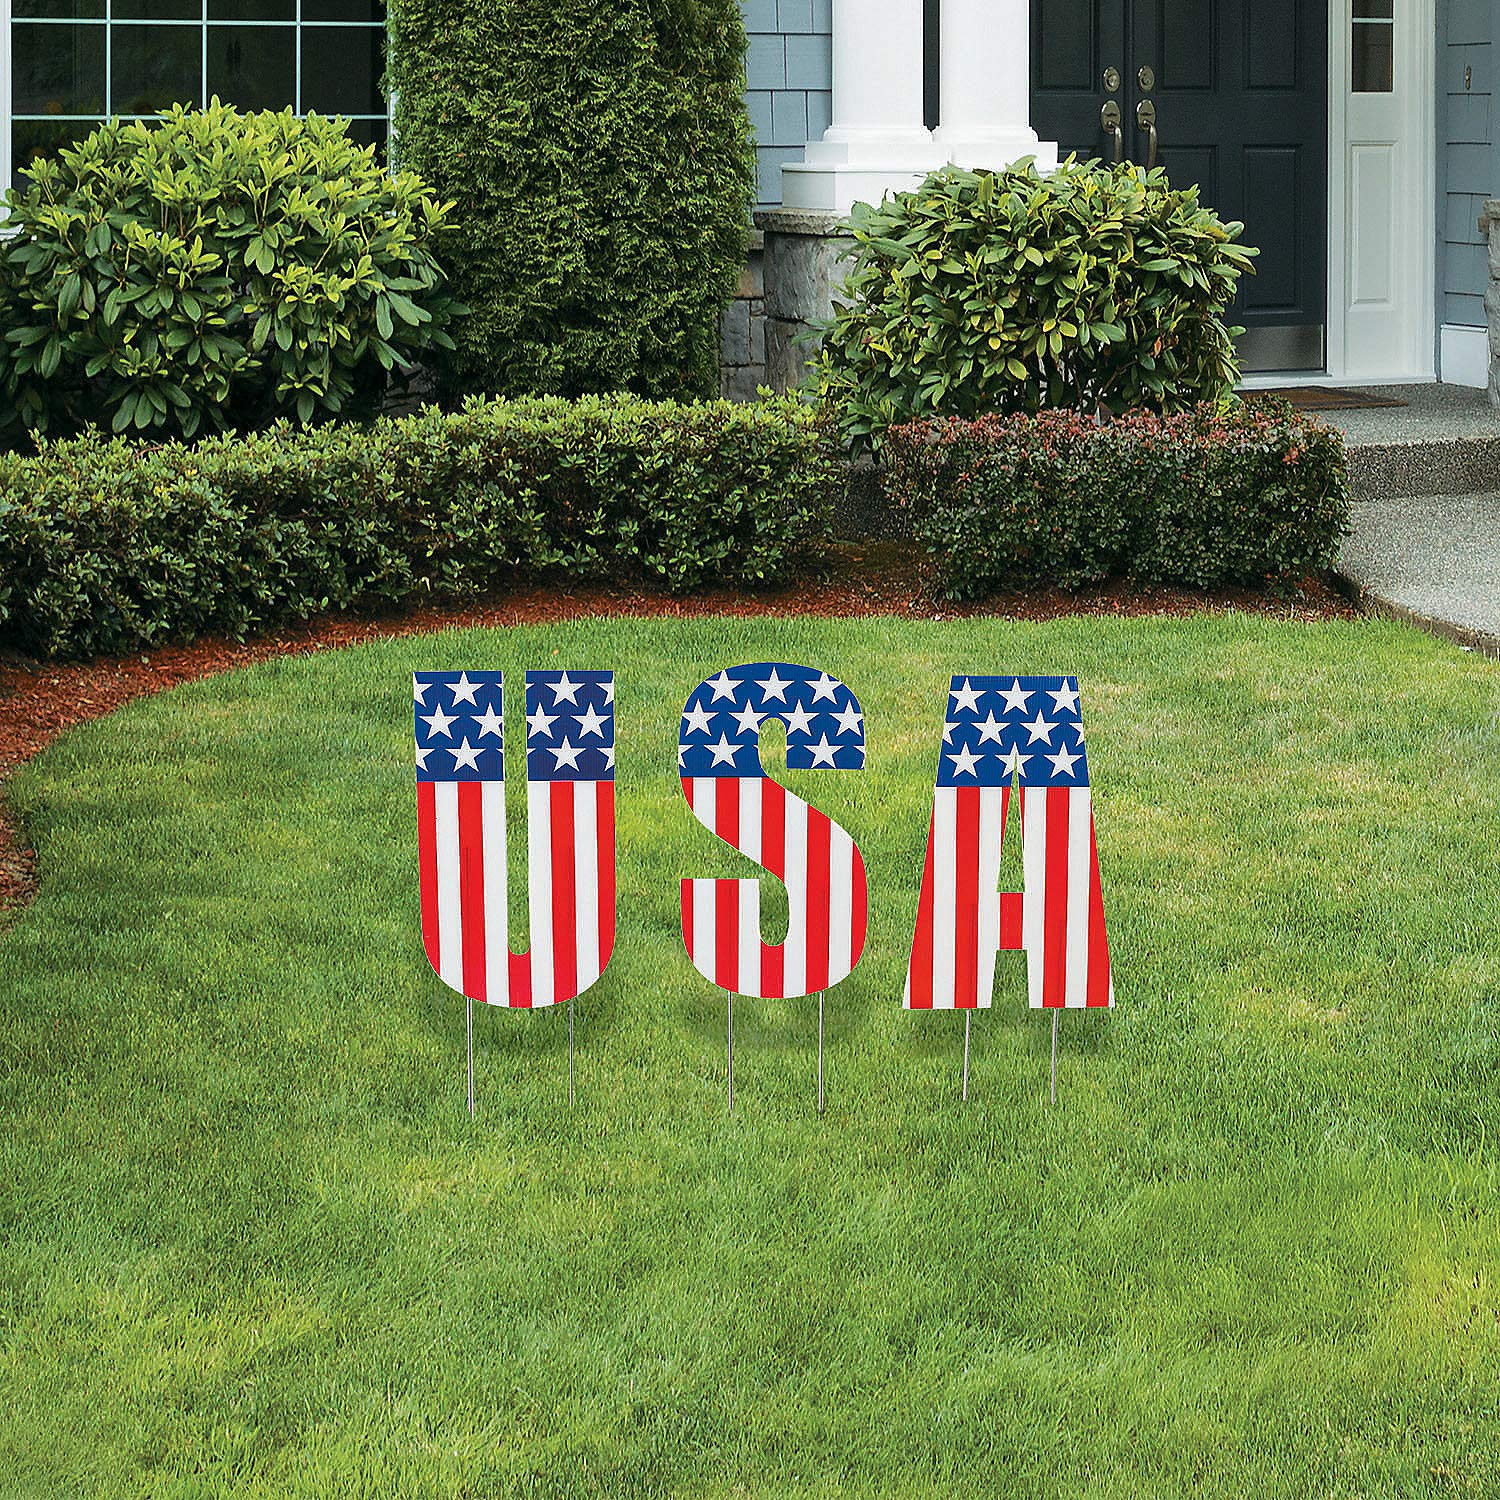 USA Letter Yard Sign - 4th of July Decor ideas!